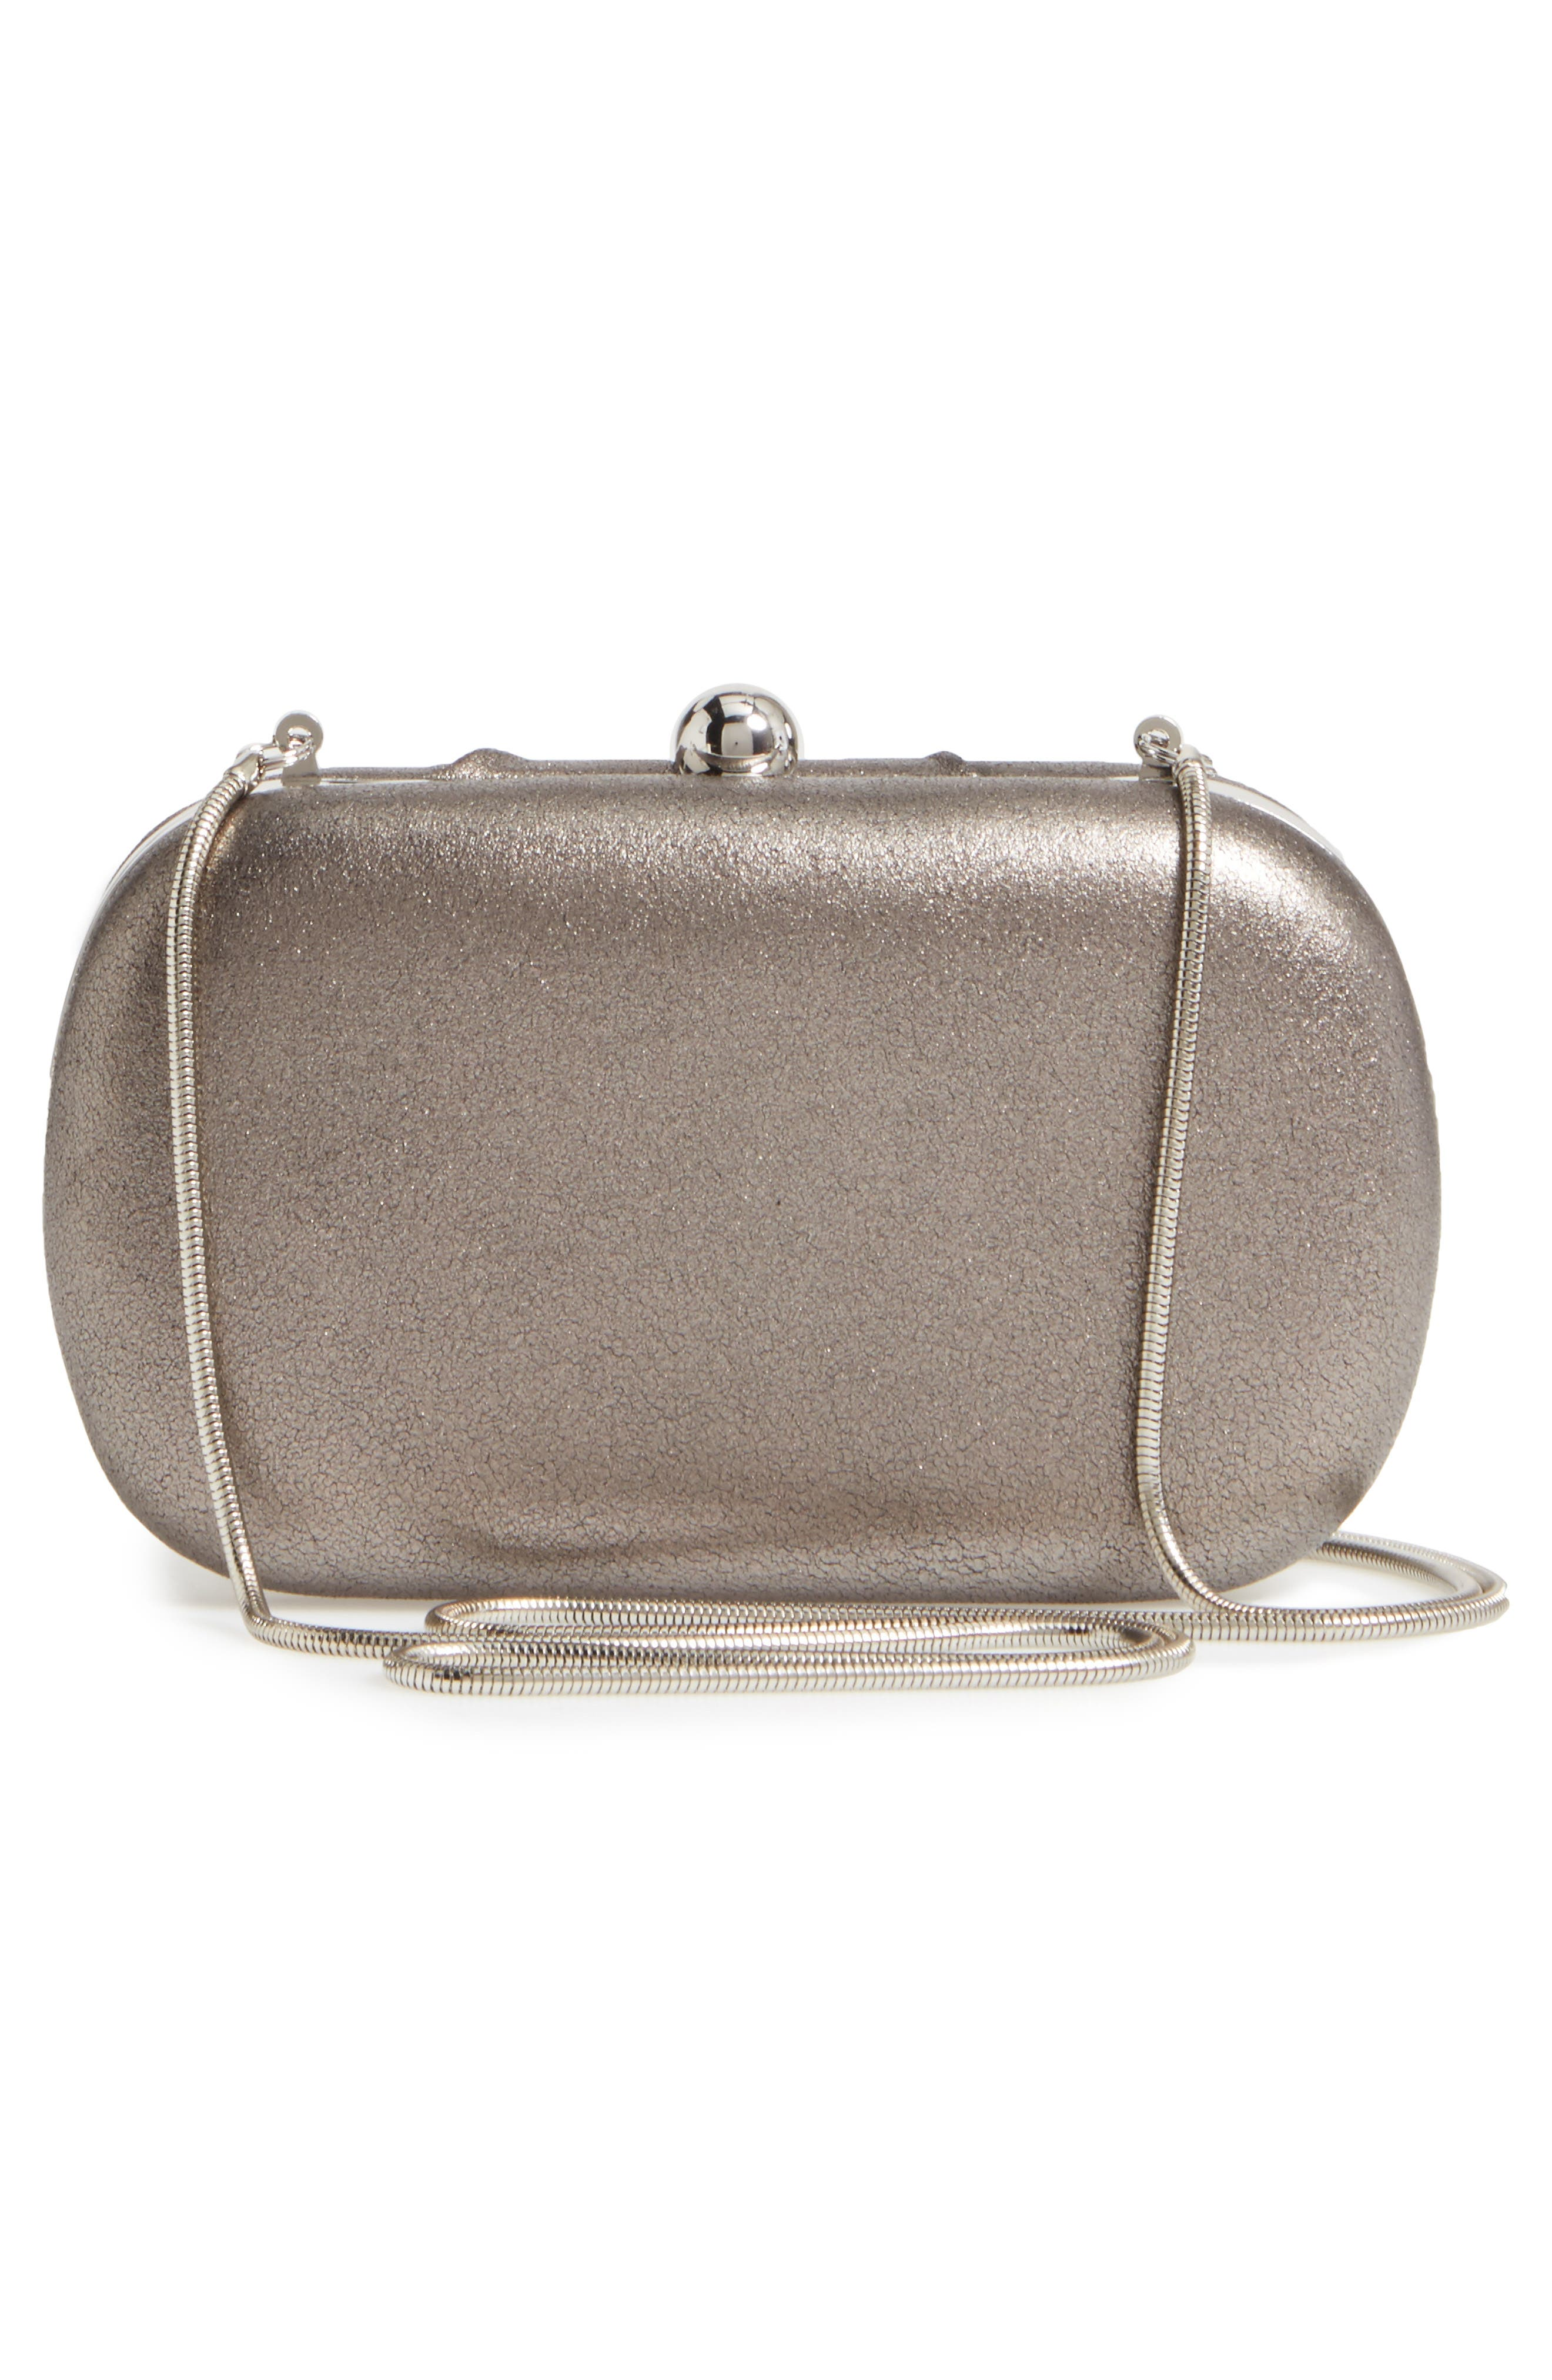 Diva Metallic Leather Clutch,                             Alternate thumbnail 3, color,                             Pewter